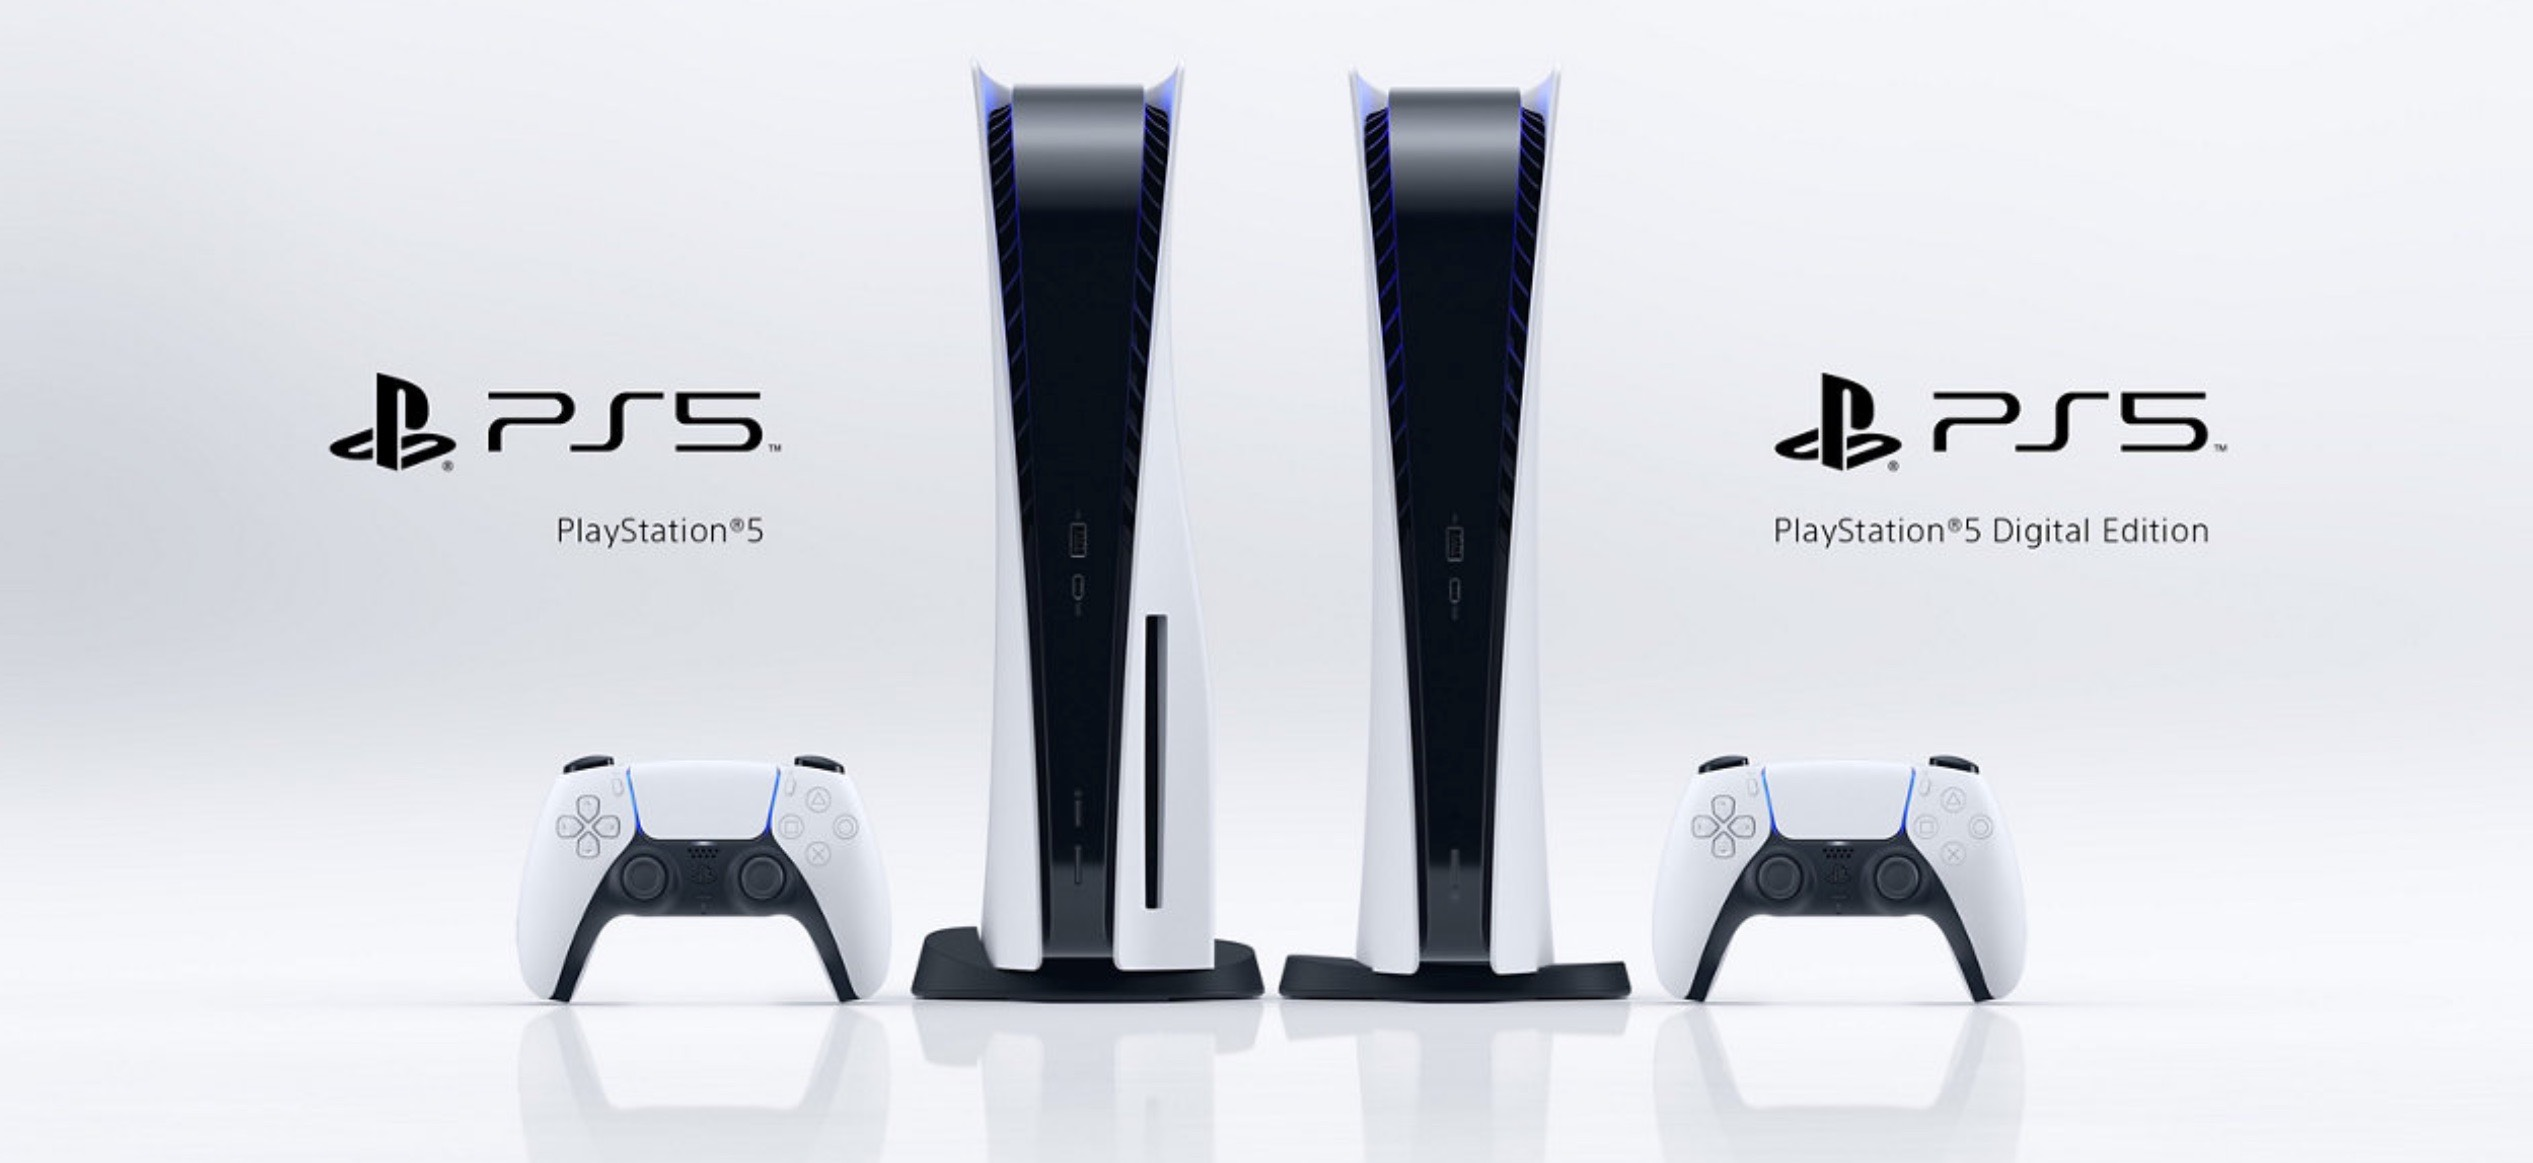 Ps5 古本 市場